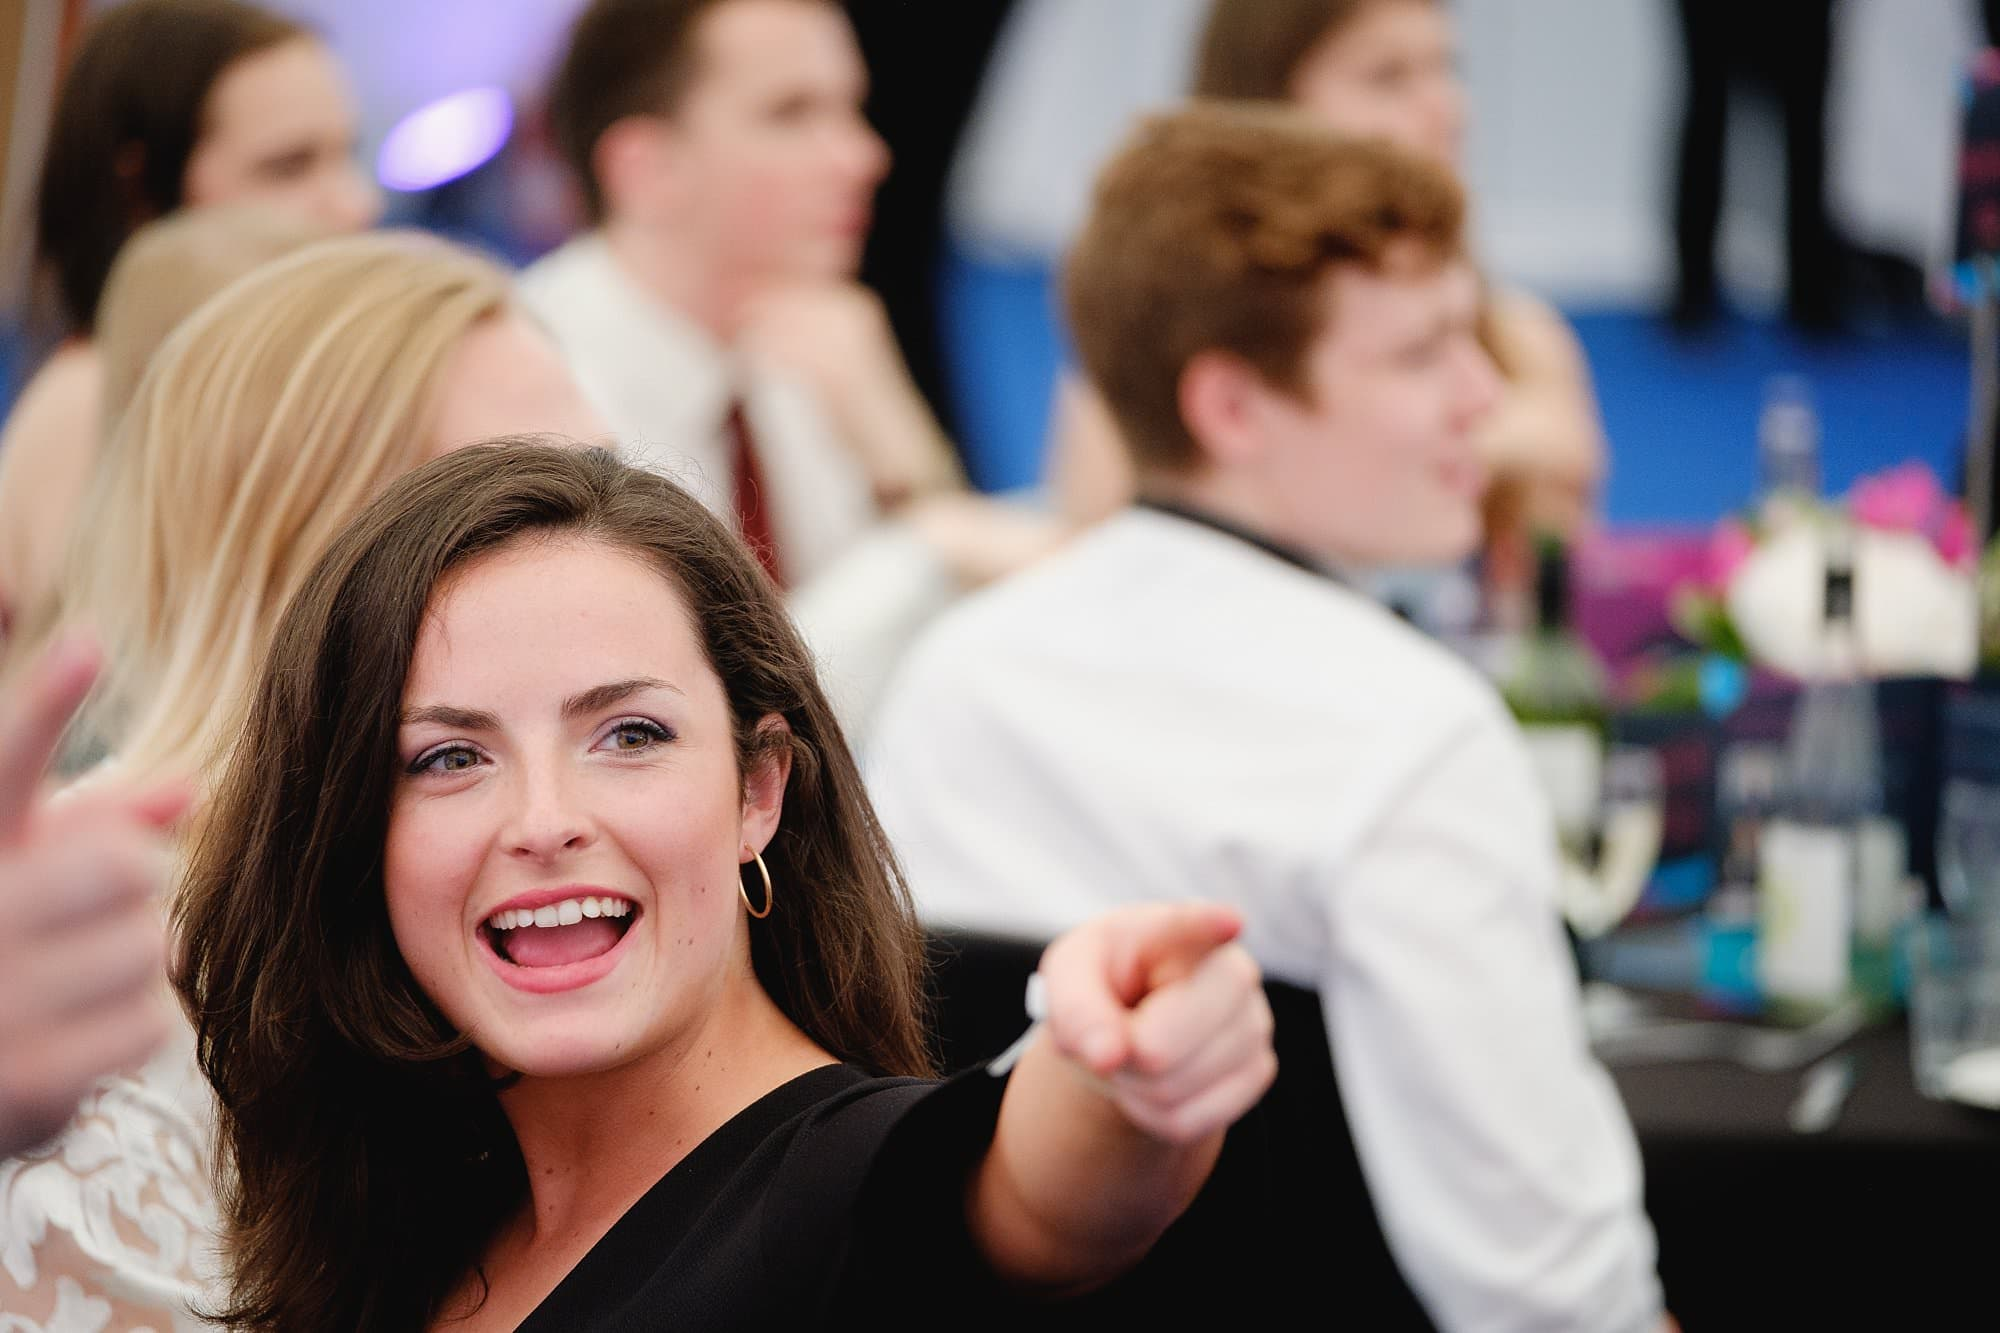 event photographer london icl 2017 013 - Imperial College London Sports Awards 2017